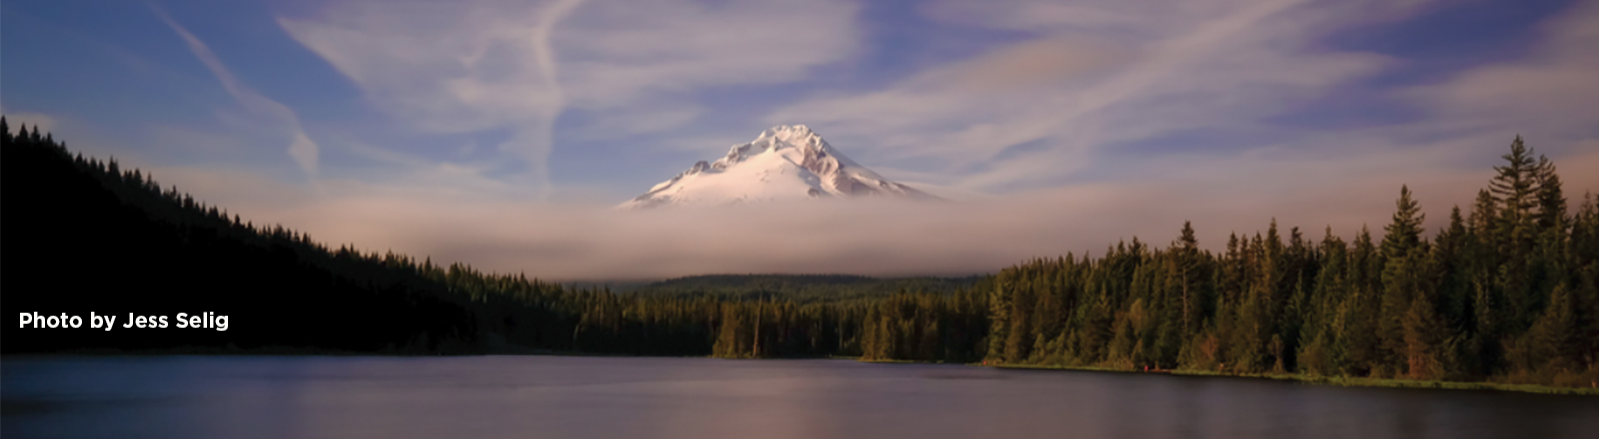 Snow covered Mt. Hood with low cloud bank over Mt. Hood National Forest with Trillium Lake in foreground